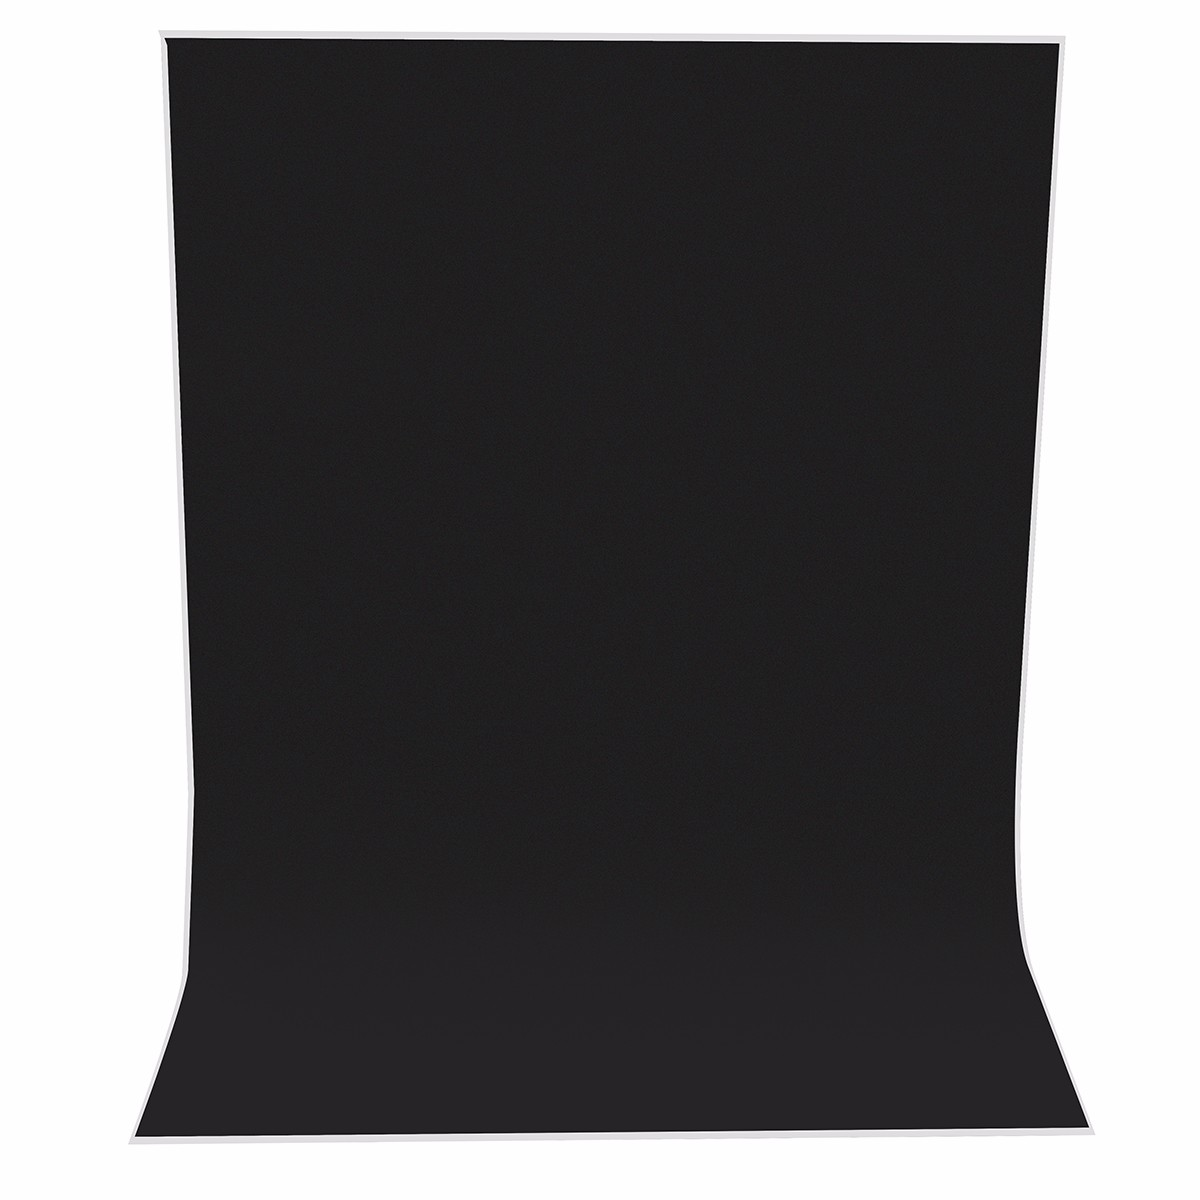 1x1.5m / 3x5ft BLACK Photography Backdrop Background Studio Photo Props 2017 New Arrival harman kardon onyx studio 2 black